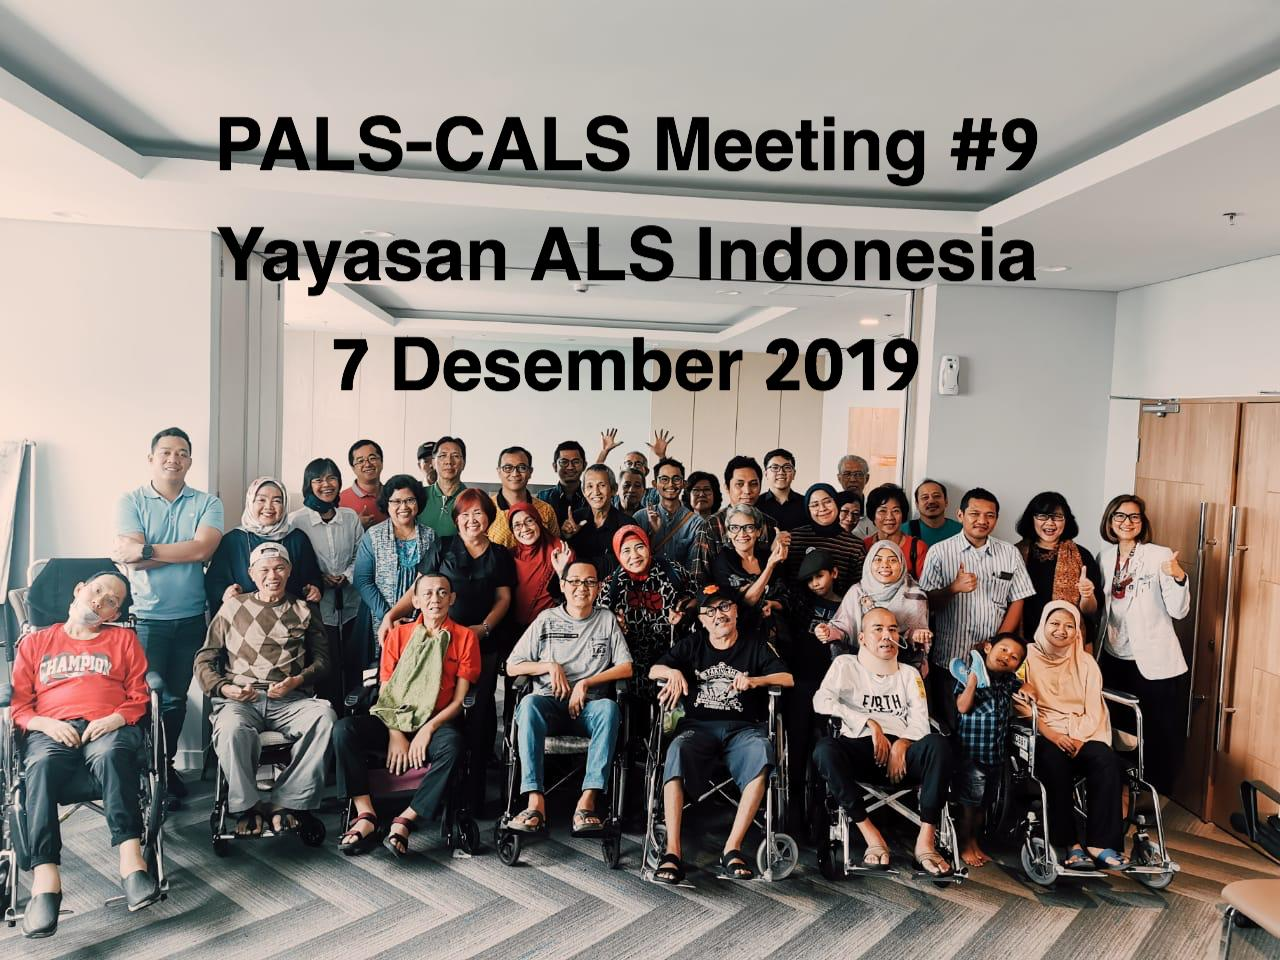 PALS-CALS Meeting #9